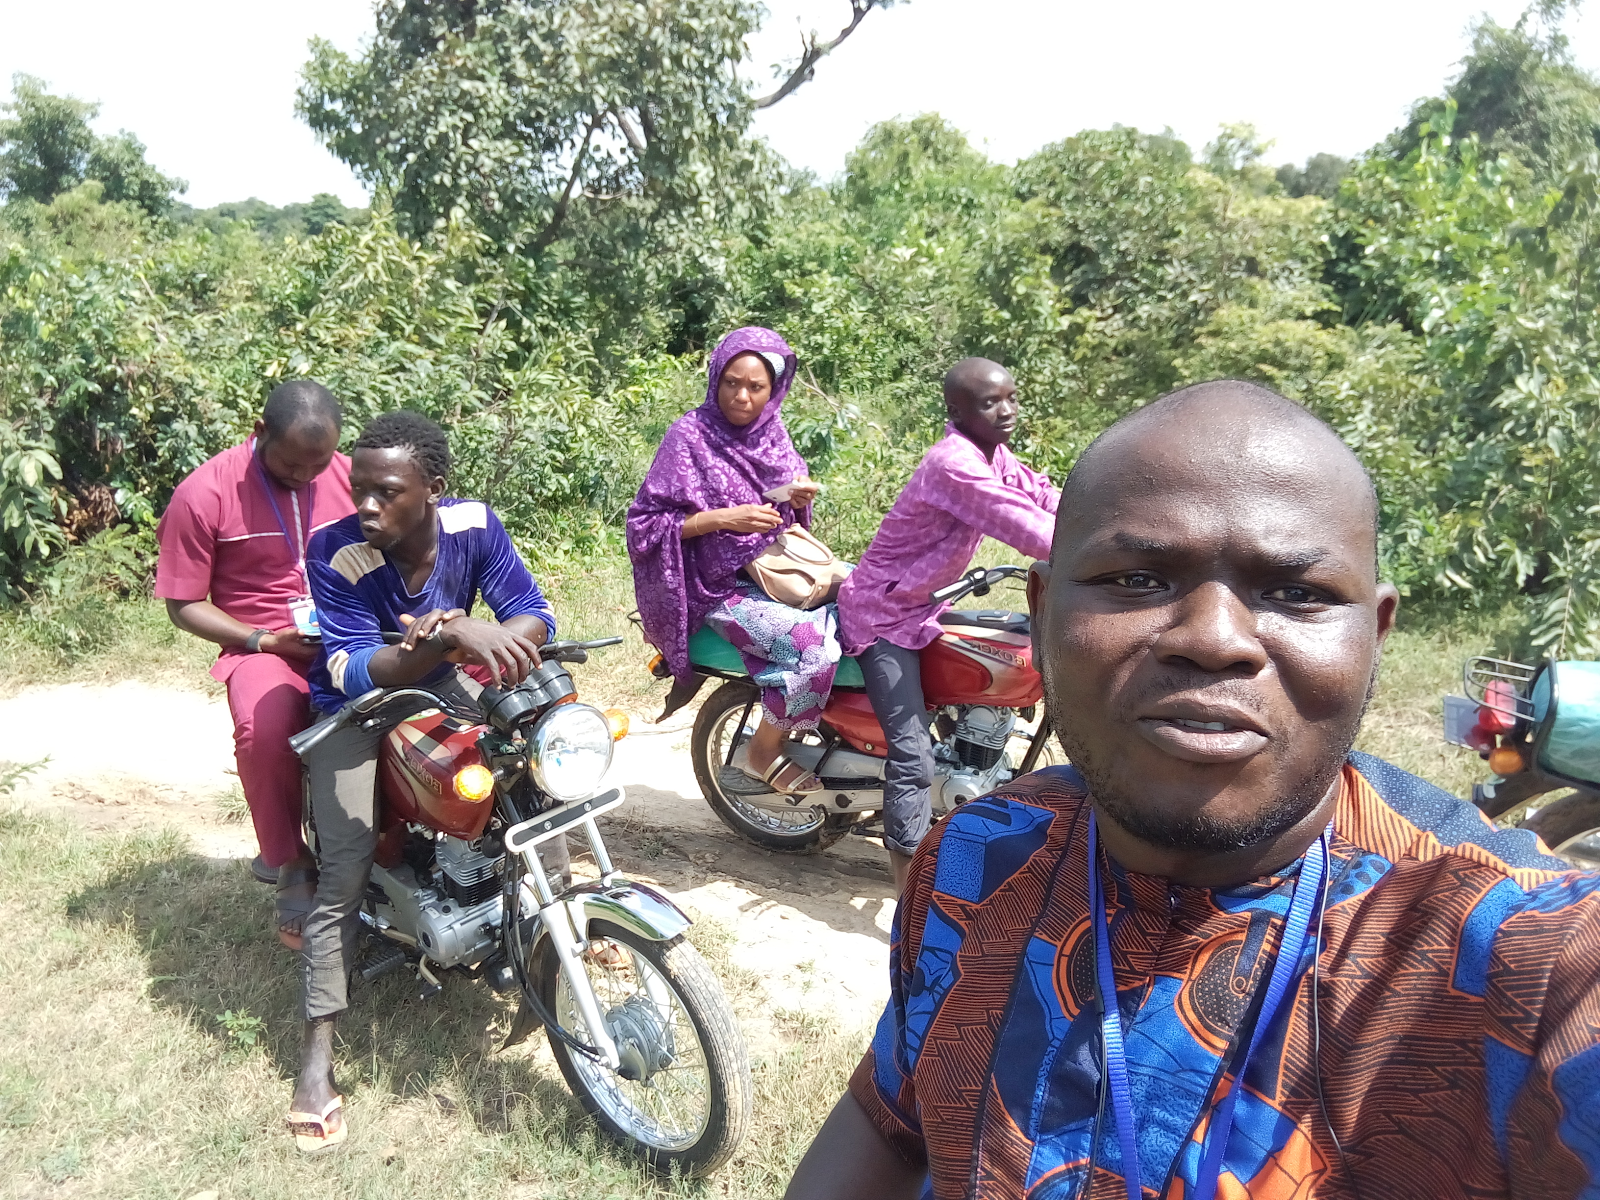 eHealth Africa staff including MER lead, Yinka Orefunwa visit Soba LGA in Kaduna State to conduct data quality assessments for the CHAI survey